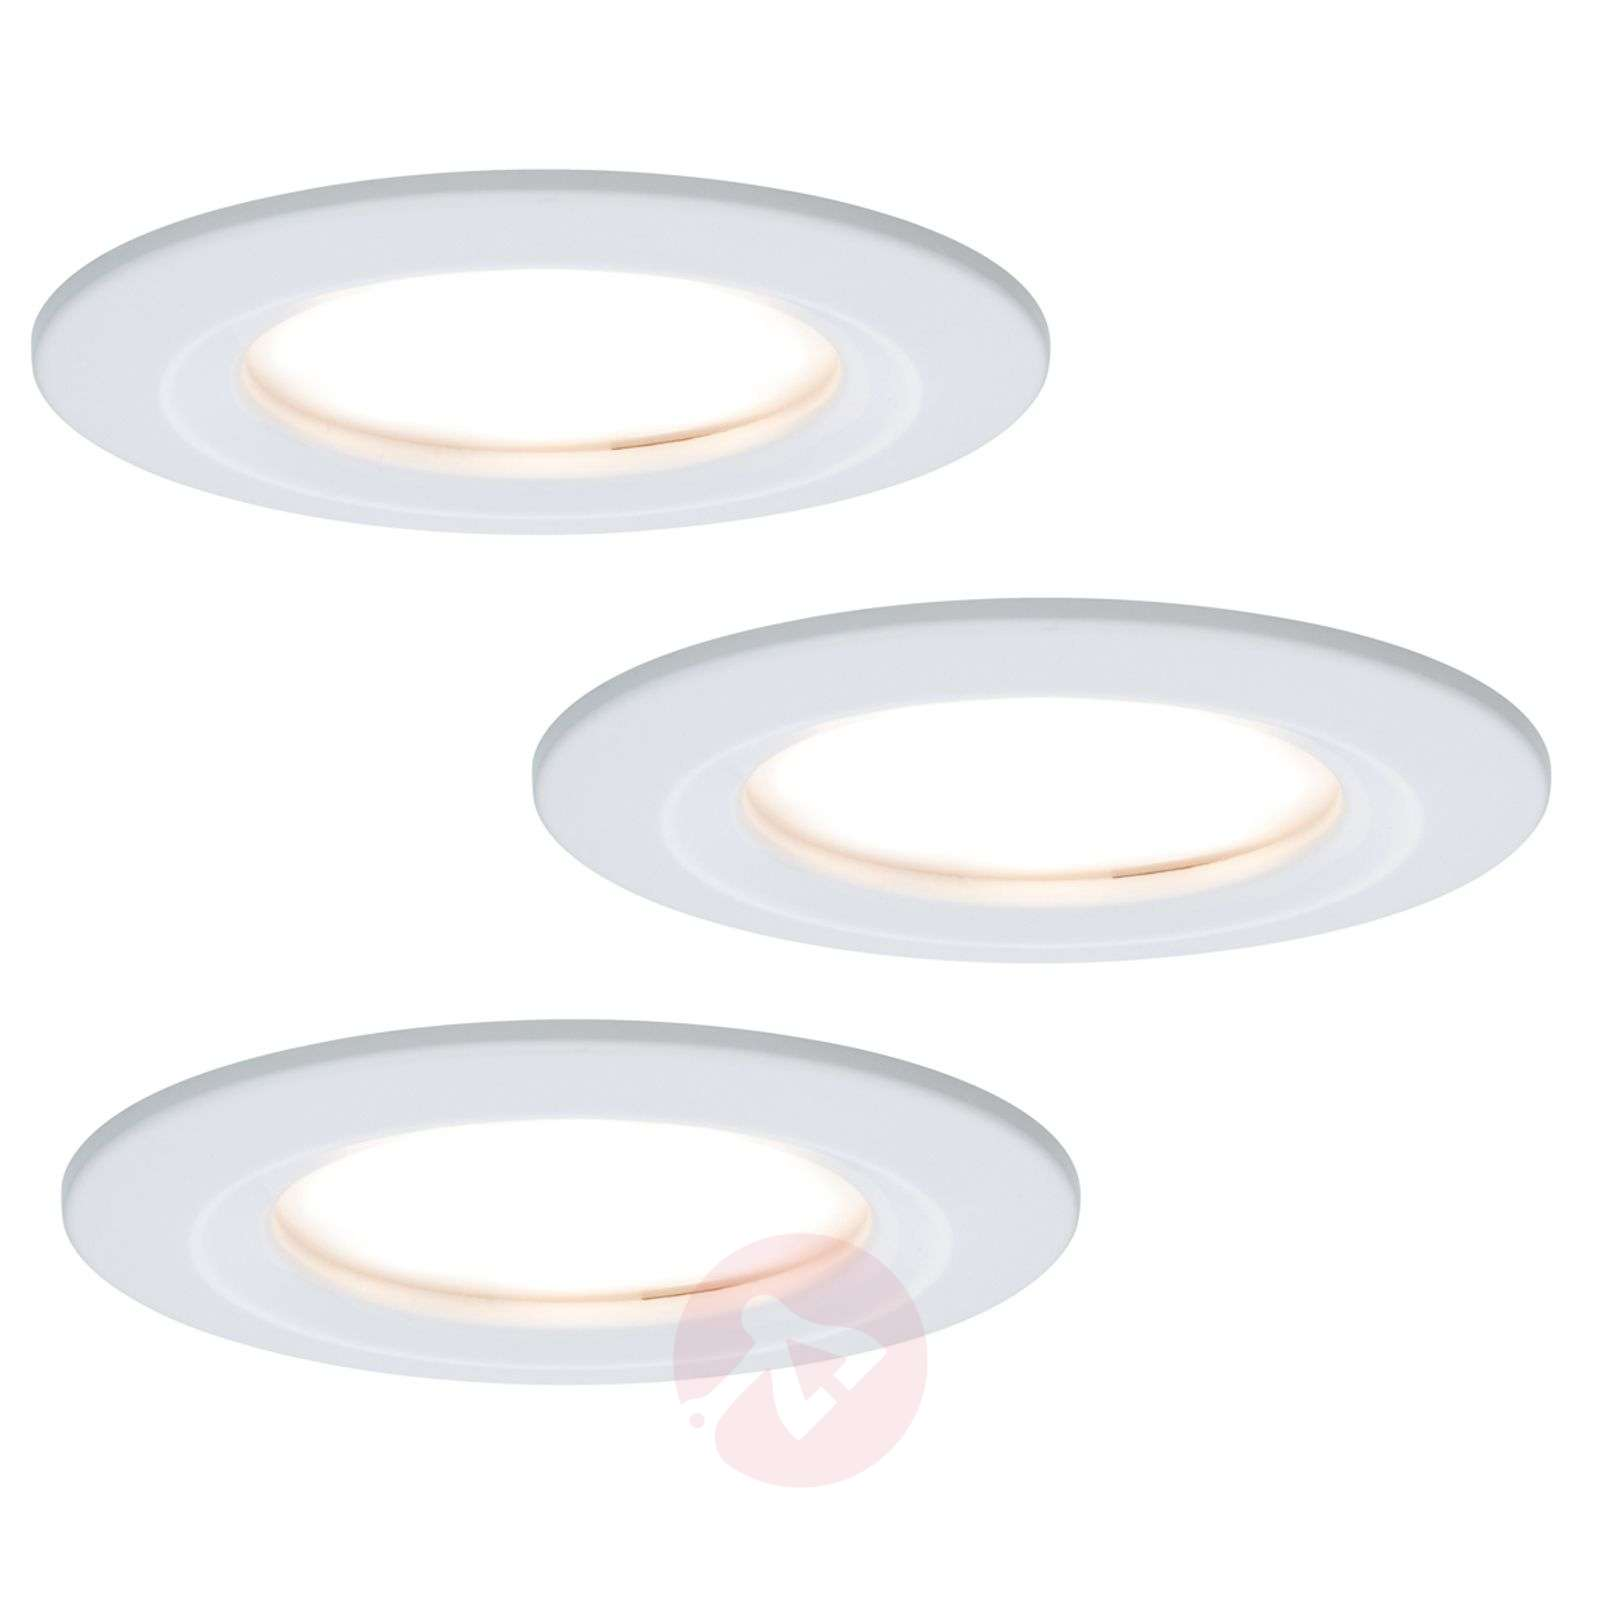 3 spots encastrables LED Coin Slim, IP44-7600812-01